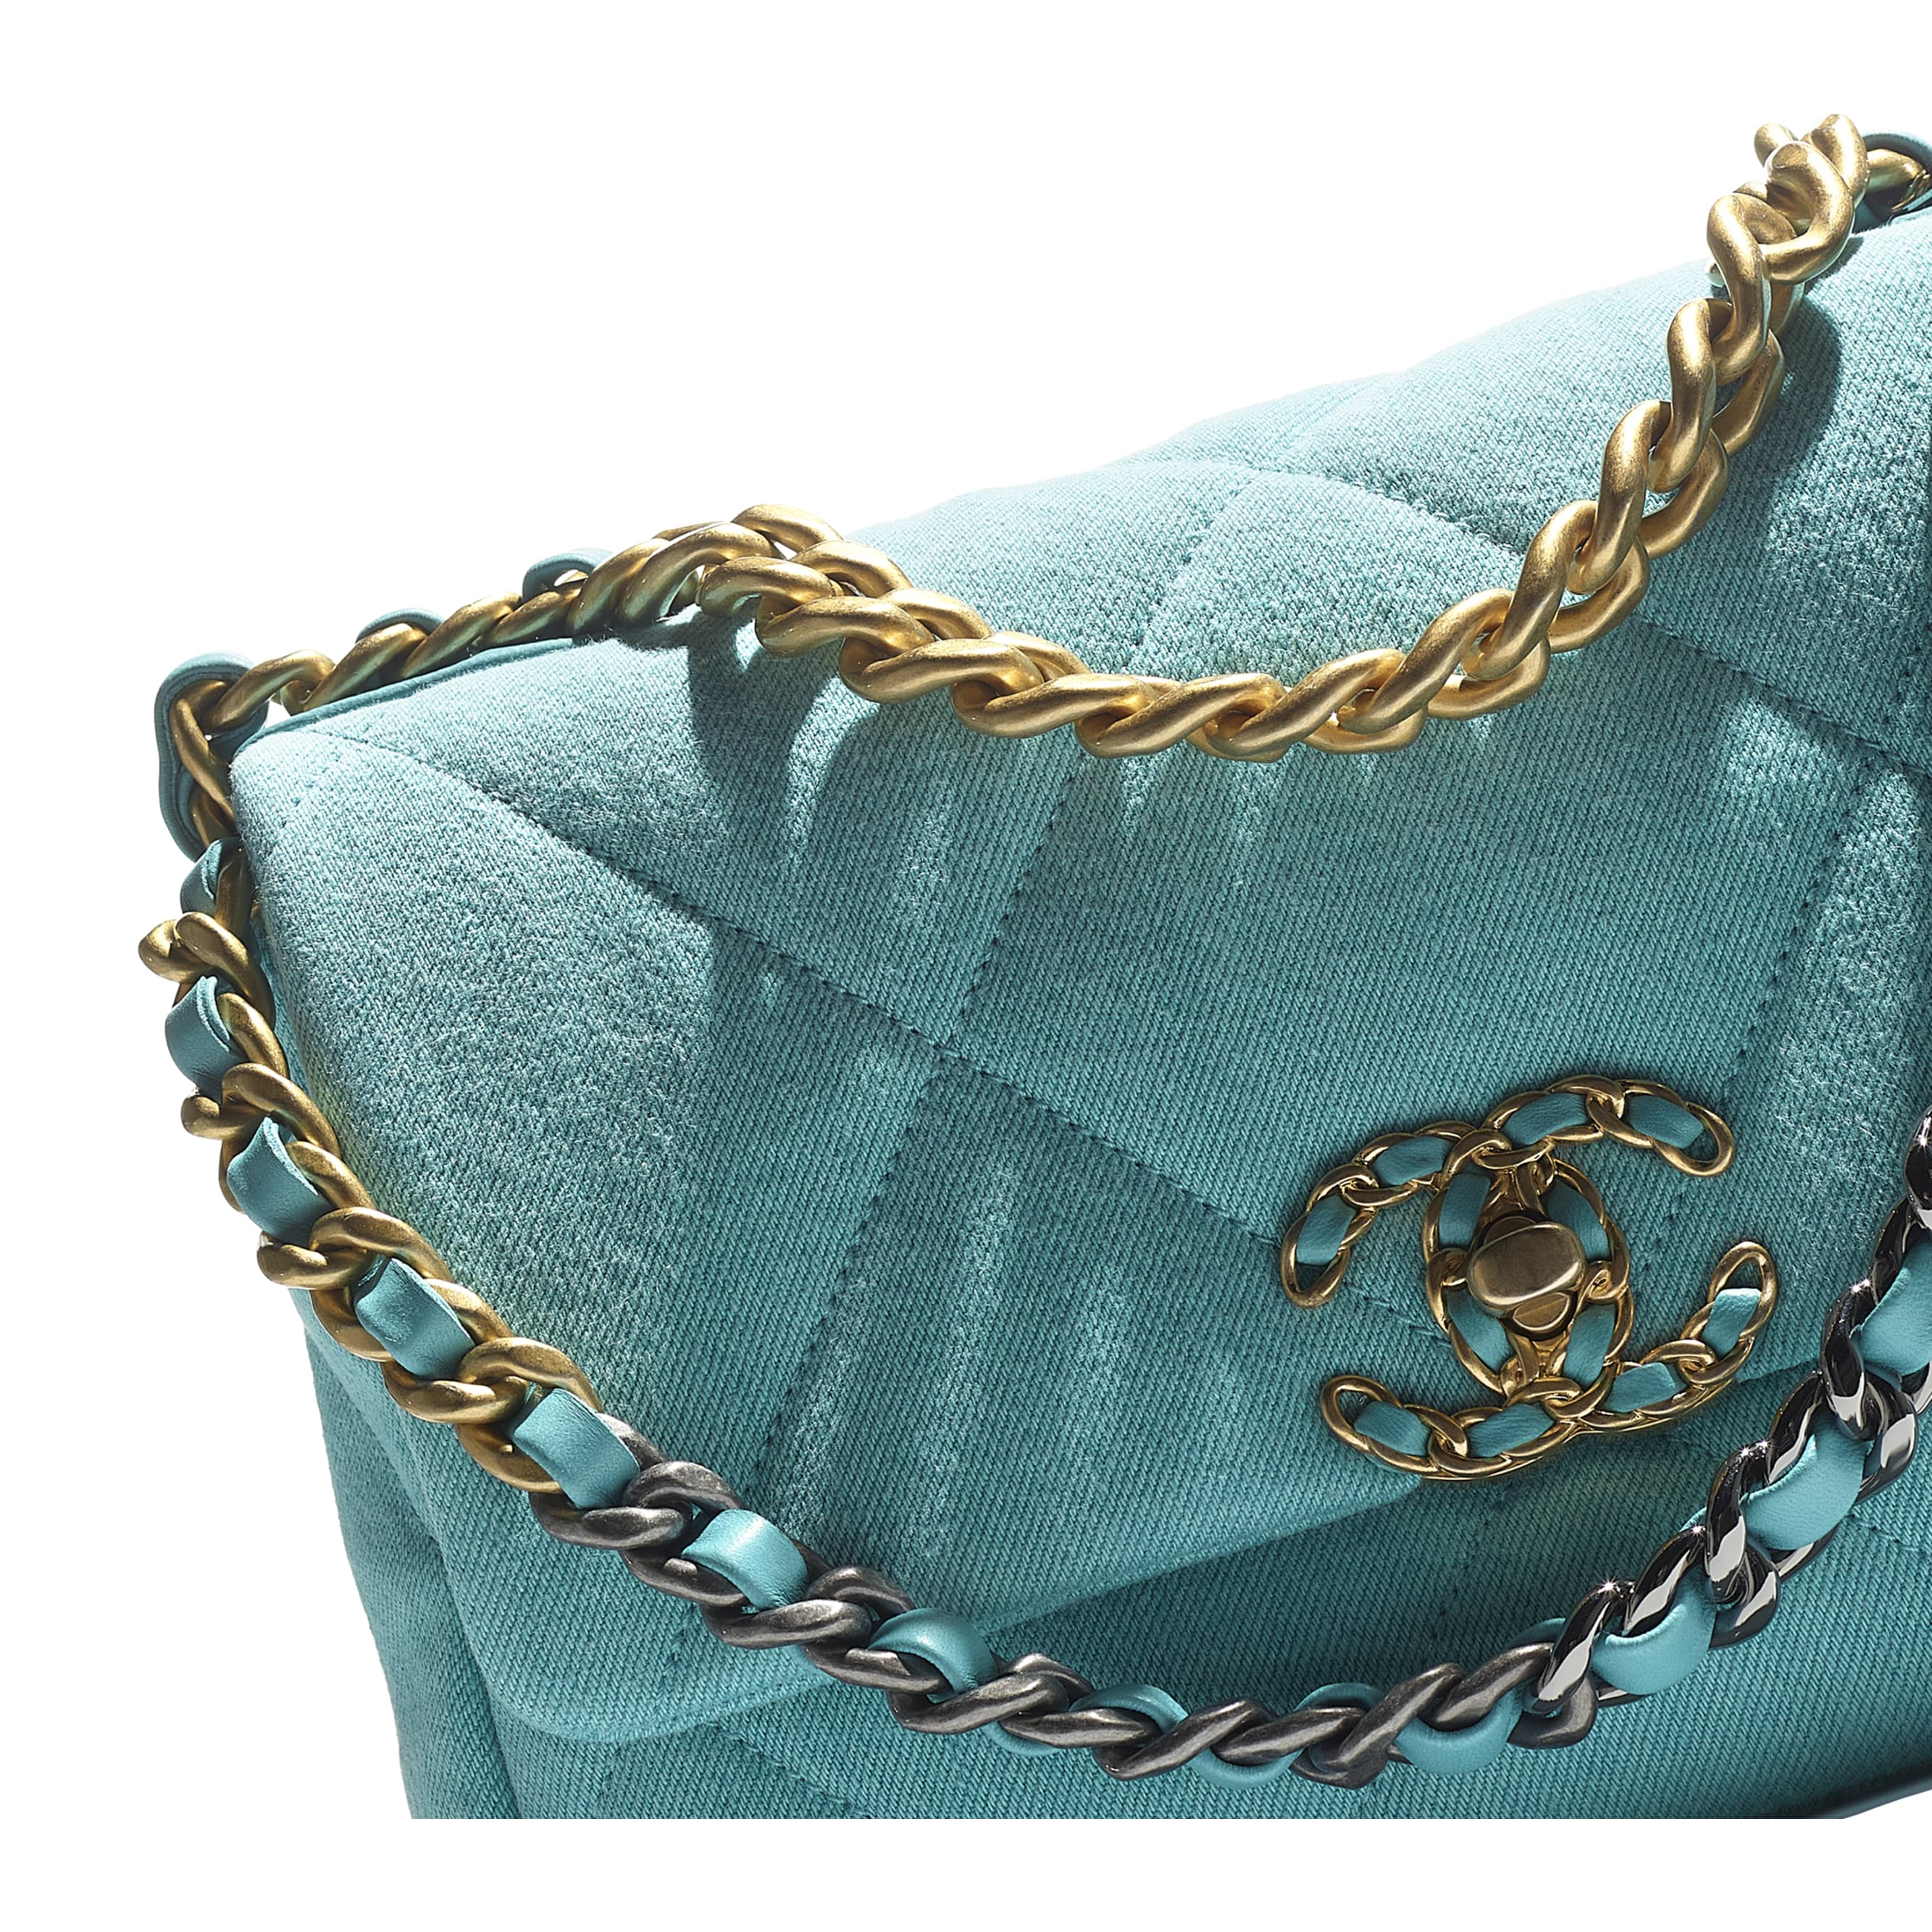 CHANEL 19 Handbag - Neon Blue - Denim, Calfskin, Gold-Tone, Silver-Tone & Ruthenium-Finish Metal - CHANEL - Extra view - see standard sized version